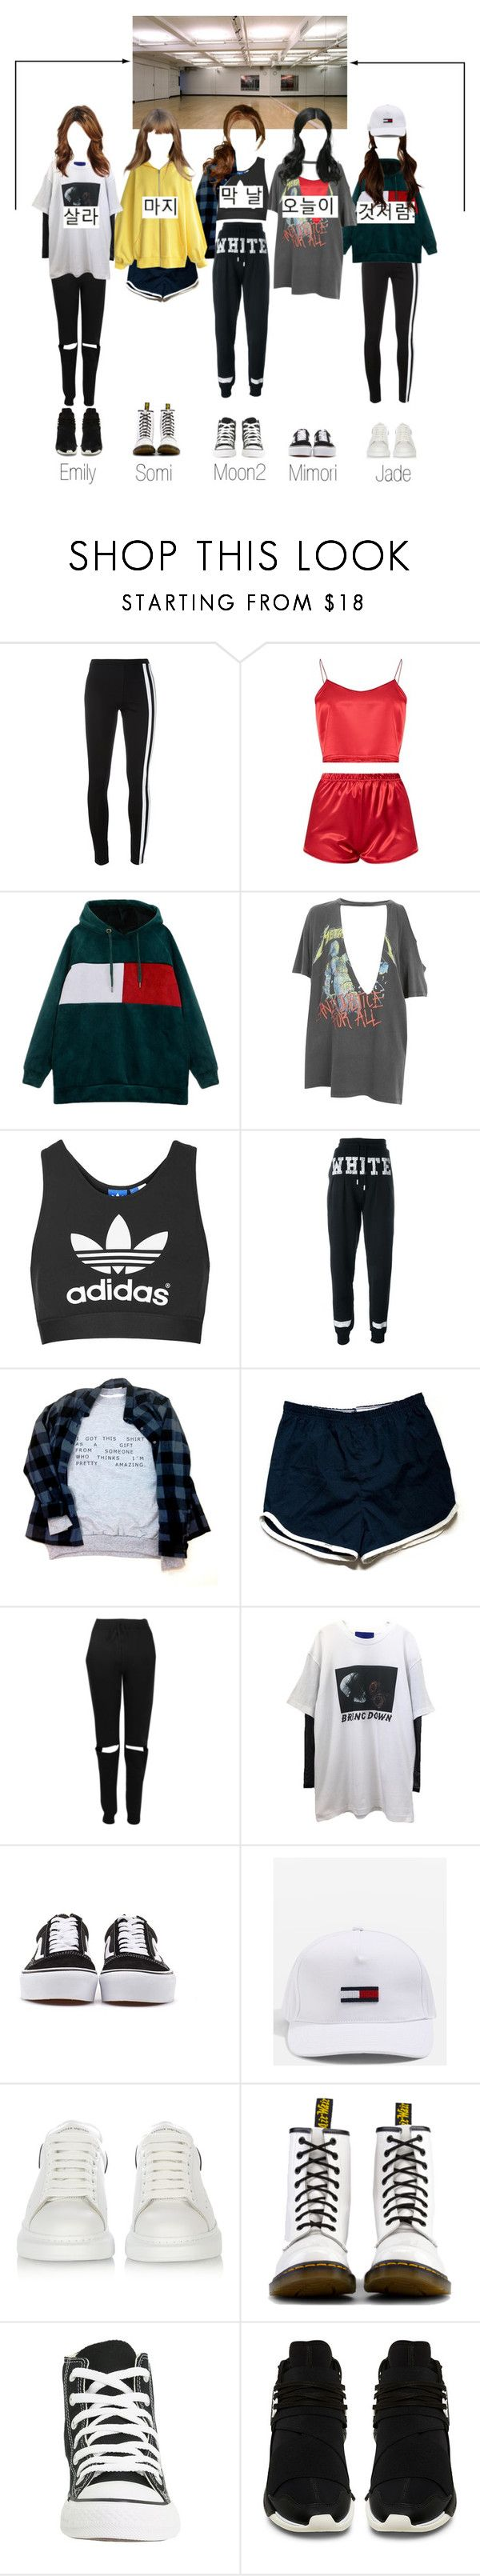 """""""SCARLET - Dance Practice"""" by scarlet-offical ❤ liked on Polyvore featuring Y-3, And Finally, Topshop, Off-White, Boohoo, Vans, Tommy Hilfiger, Alexander McQueen, Dr. Martens and Converse"""